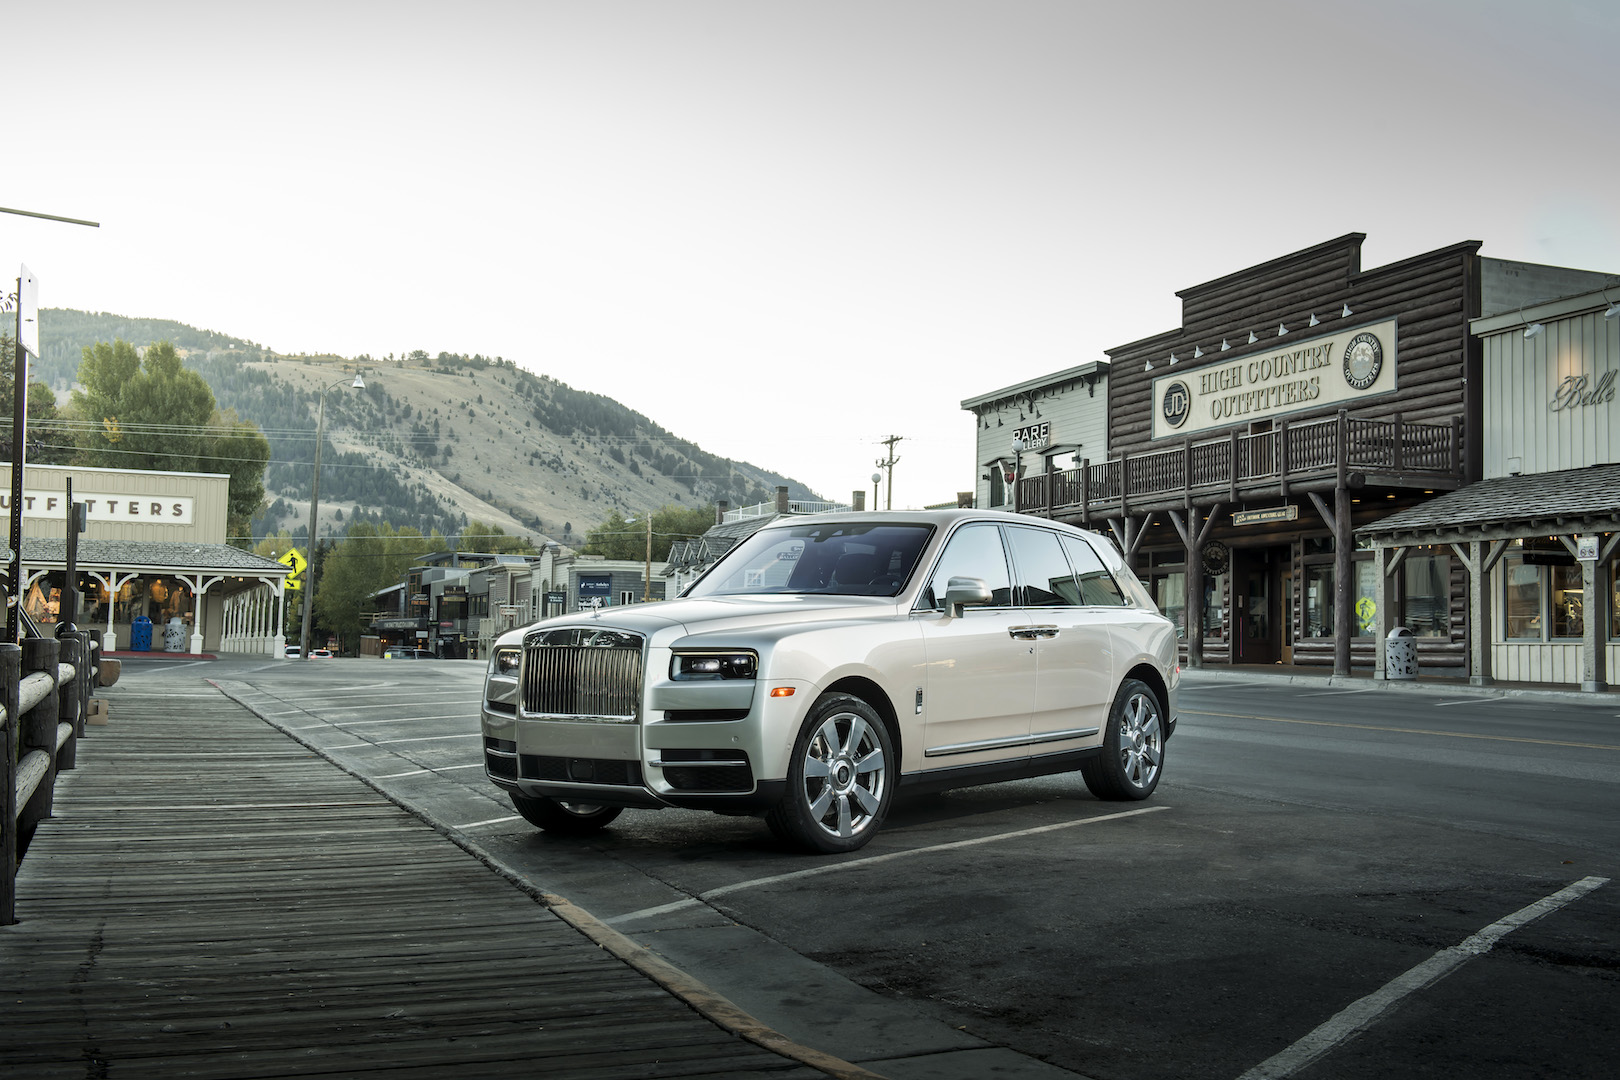 Rolls Royce Cullinan Demand Outstrips Production Capacity